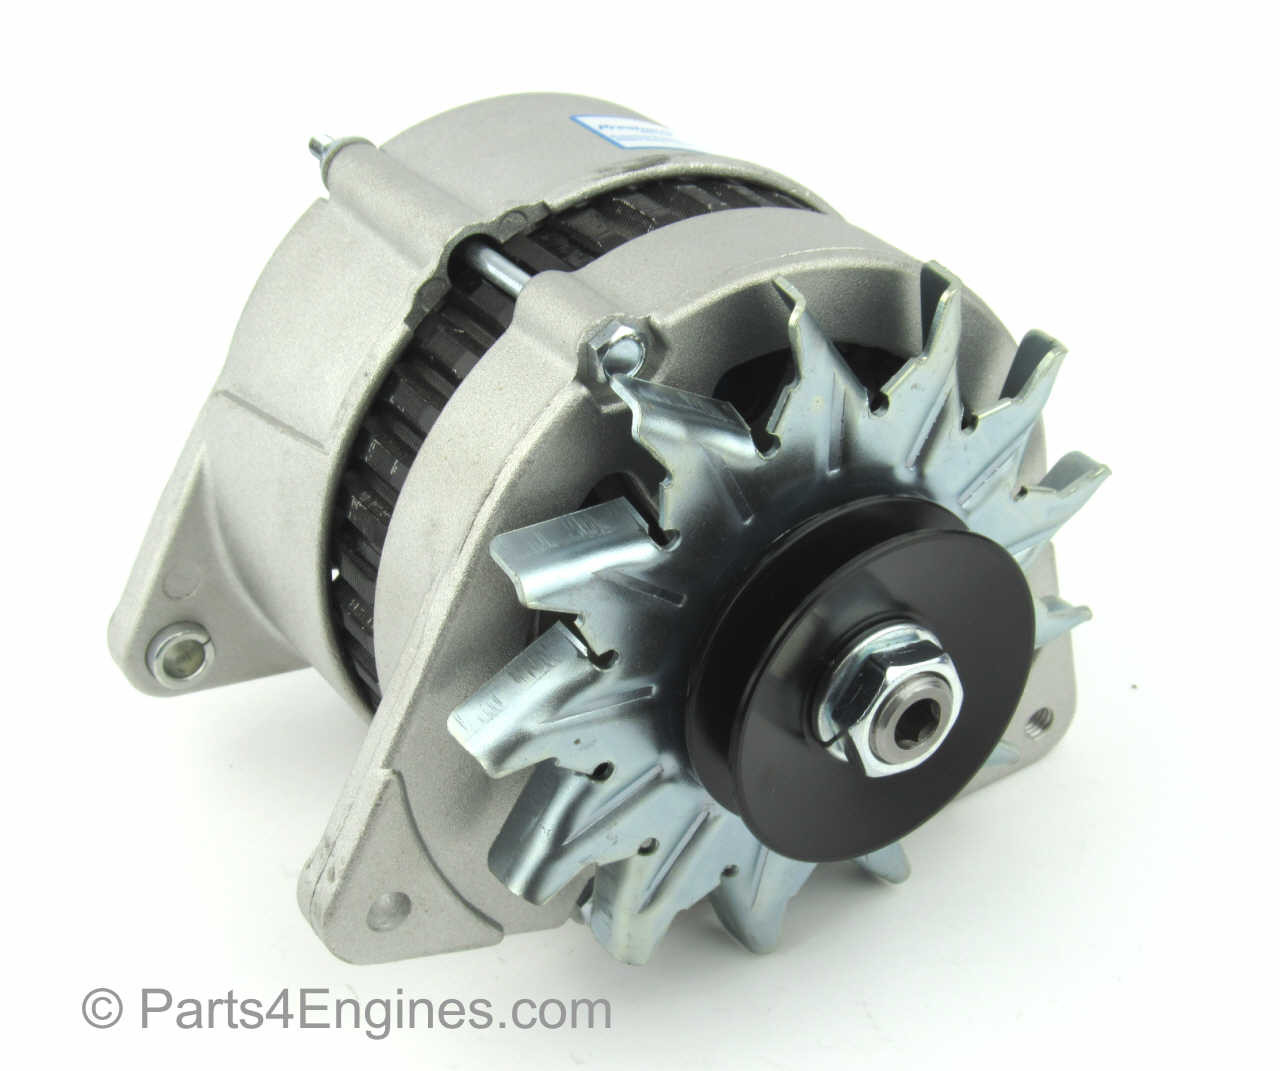 medium resolution of  left perkins 4 107 alternator 12v 70 amp from parts4engines com